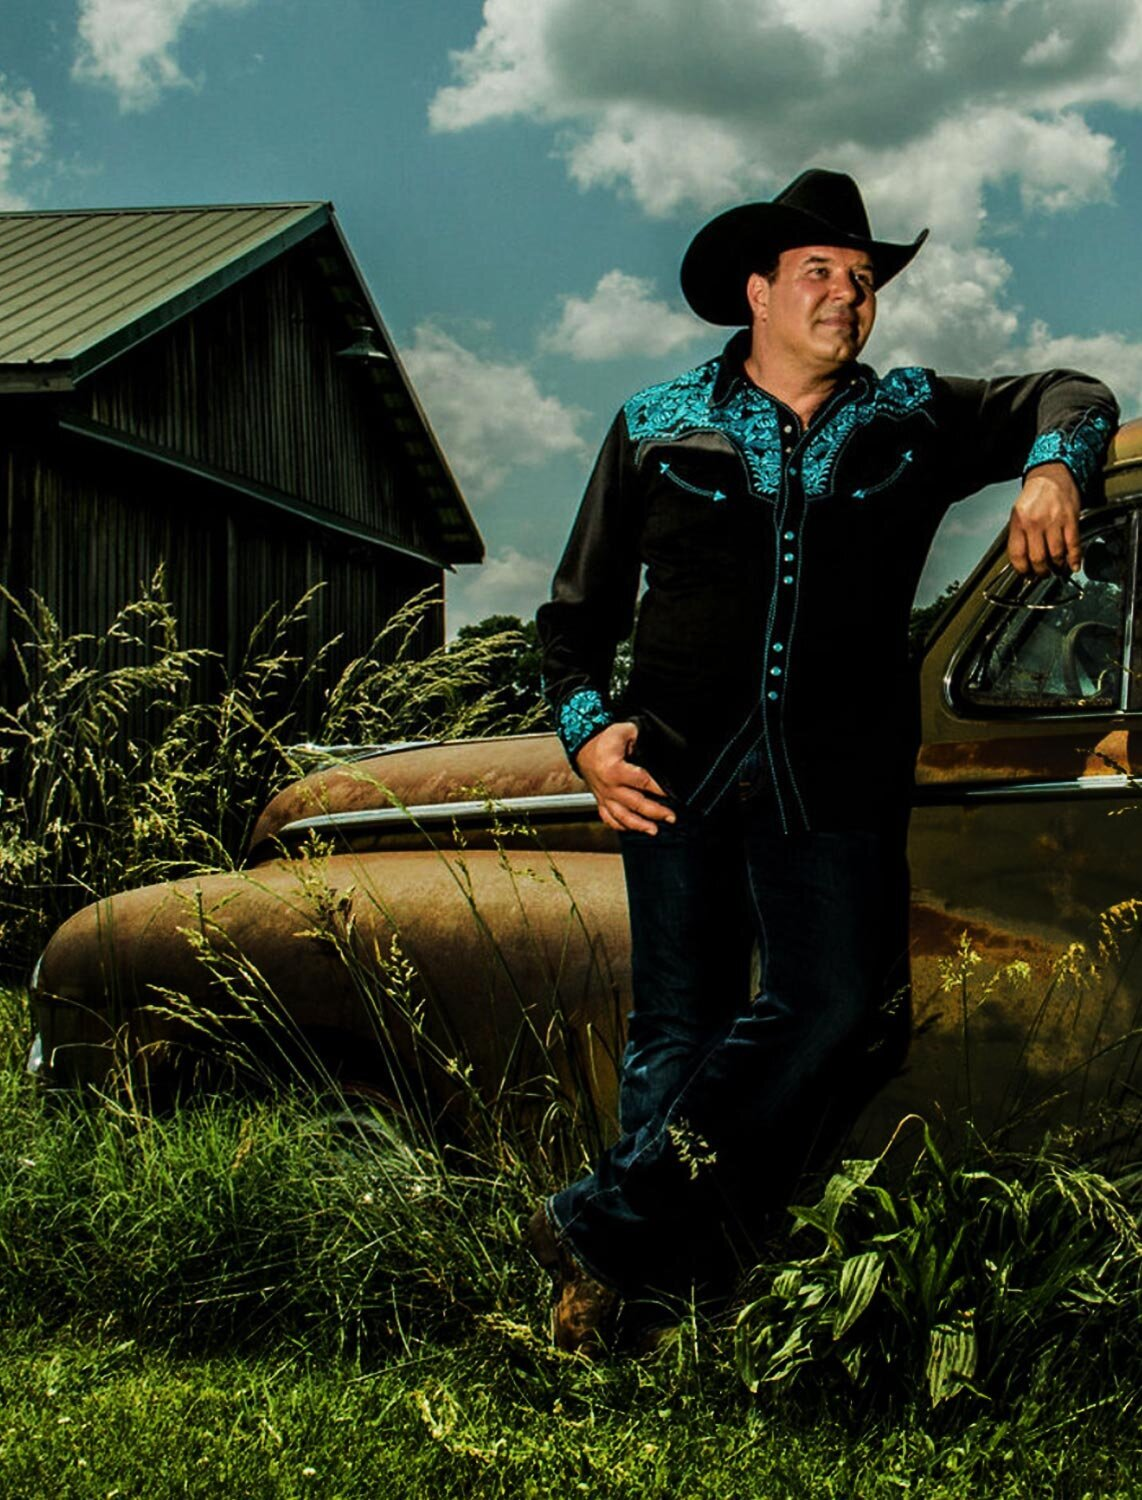 Interview featuring Mark Maryanovich country music photography South 40 musician in cowboy hat leaning against vintage car parked in grass barn and blue sky with puffy clouds behind him page 7